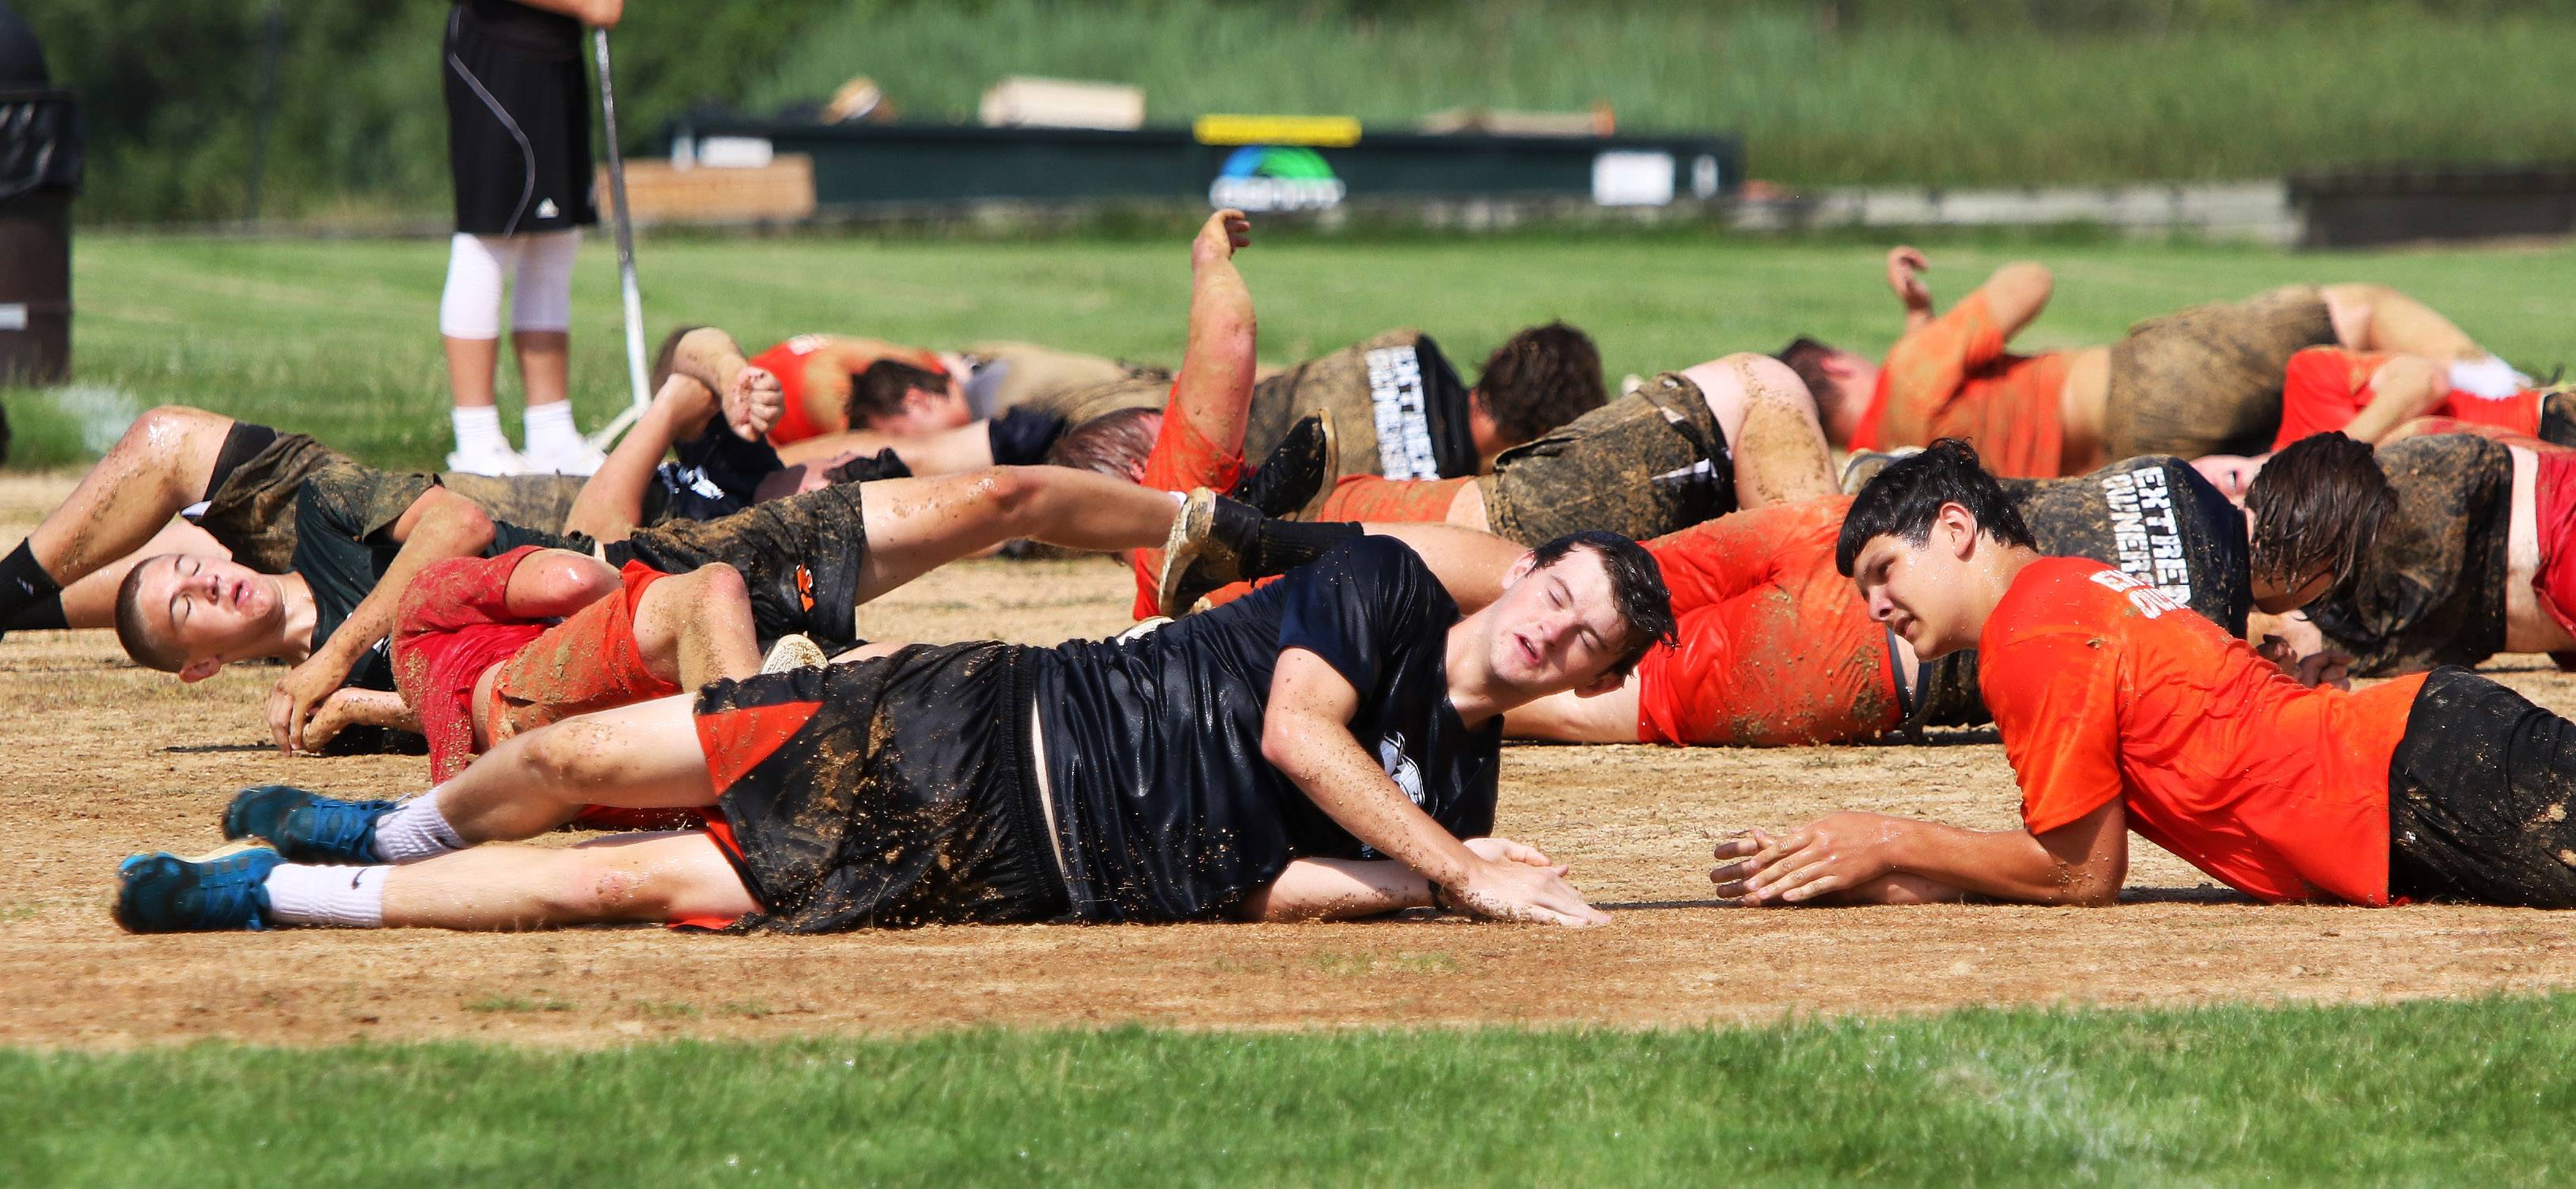 Libertyville High School football players Max Wood, left, John Palmeri and their teammates roll in dirt Wednesday during a training exercise led by two retired Navy SEALs.